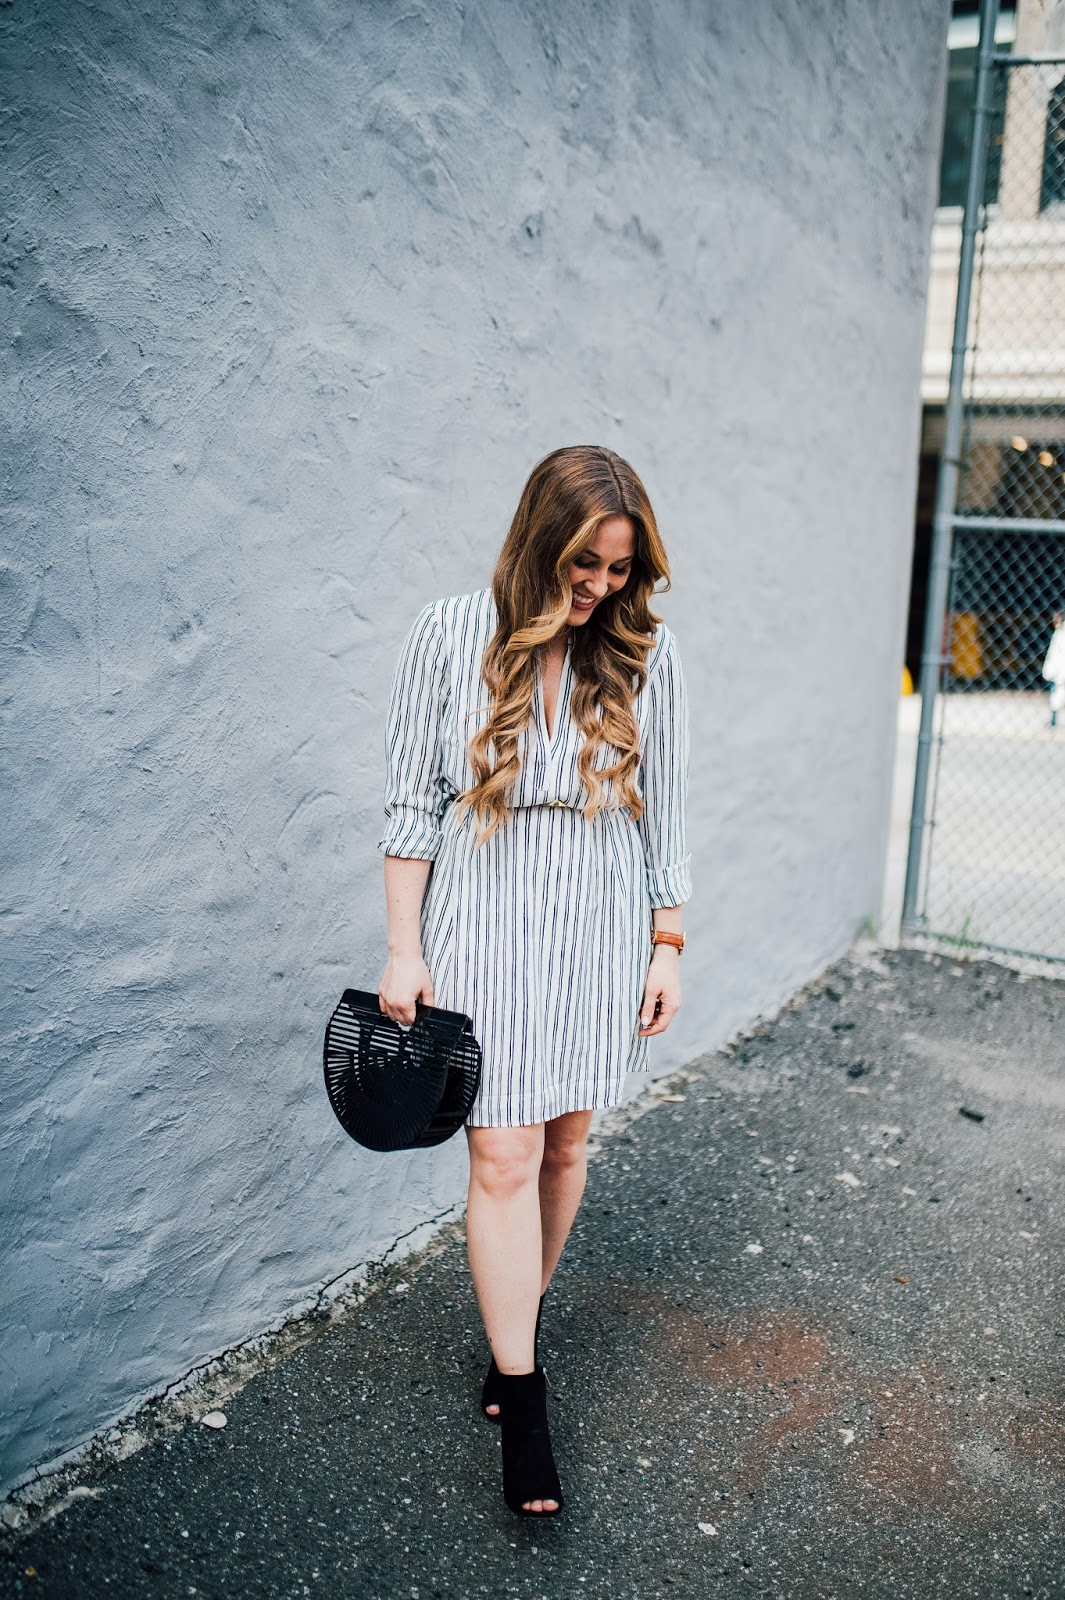 Trend Spin Linkup - Statement Accessories by fashion blogger Laura of Walking in Memphis in High Heels